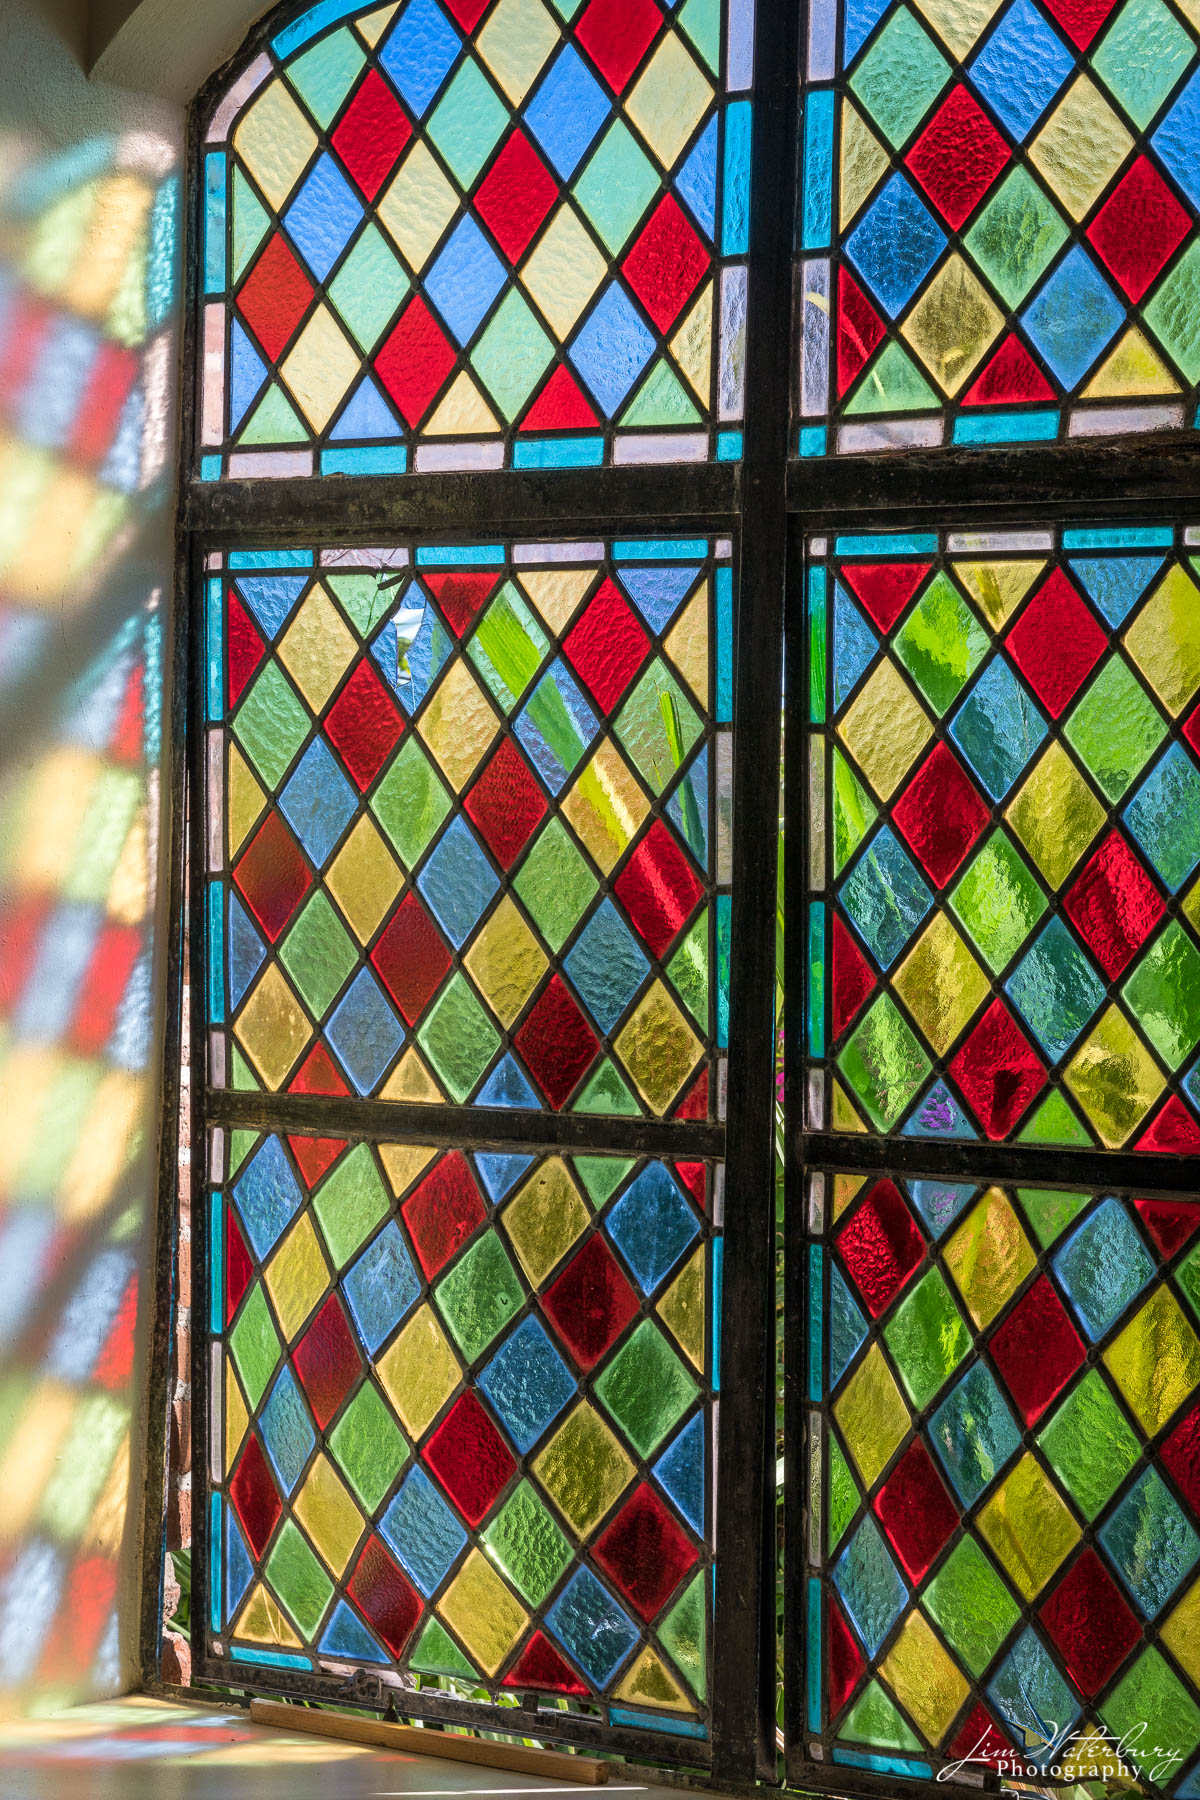 Antigua, Antiguan life, chapel, stained glass, window, photo